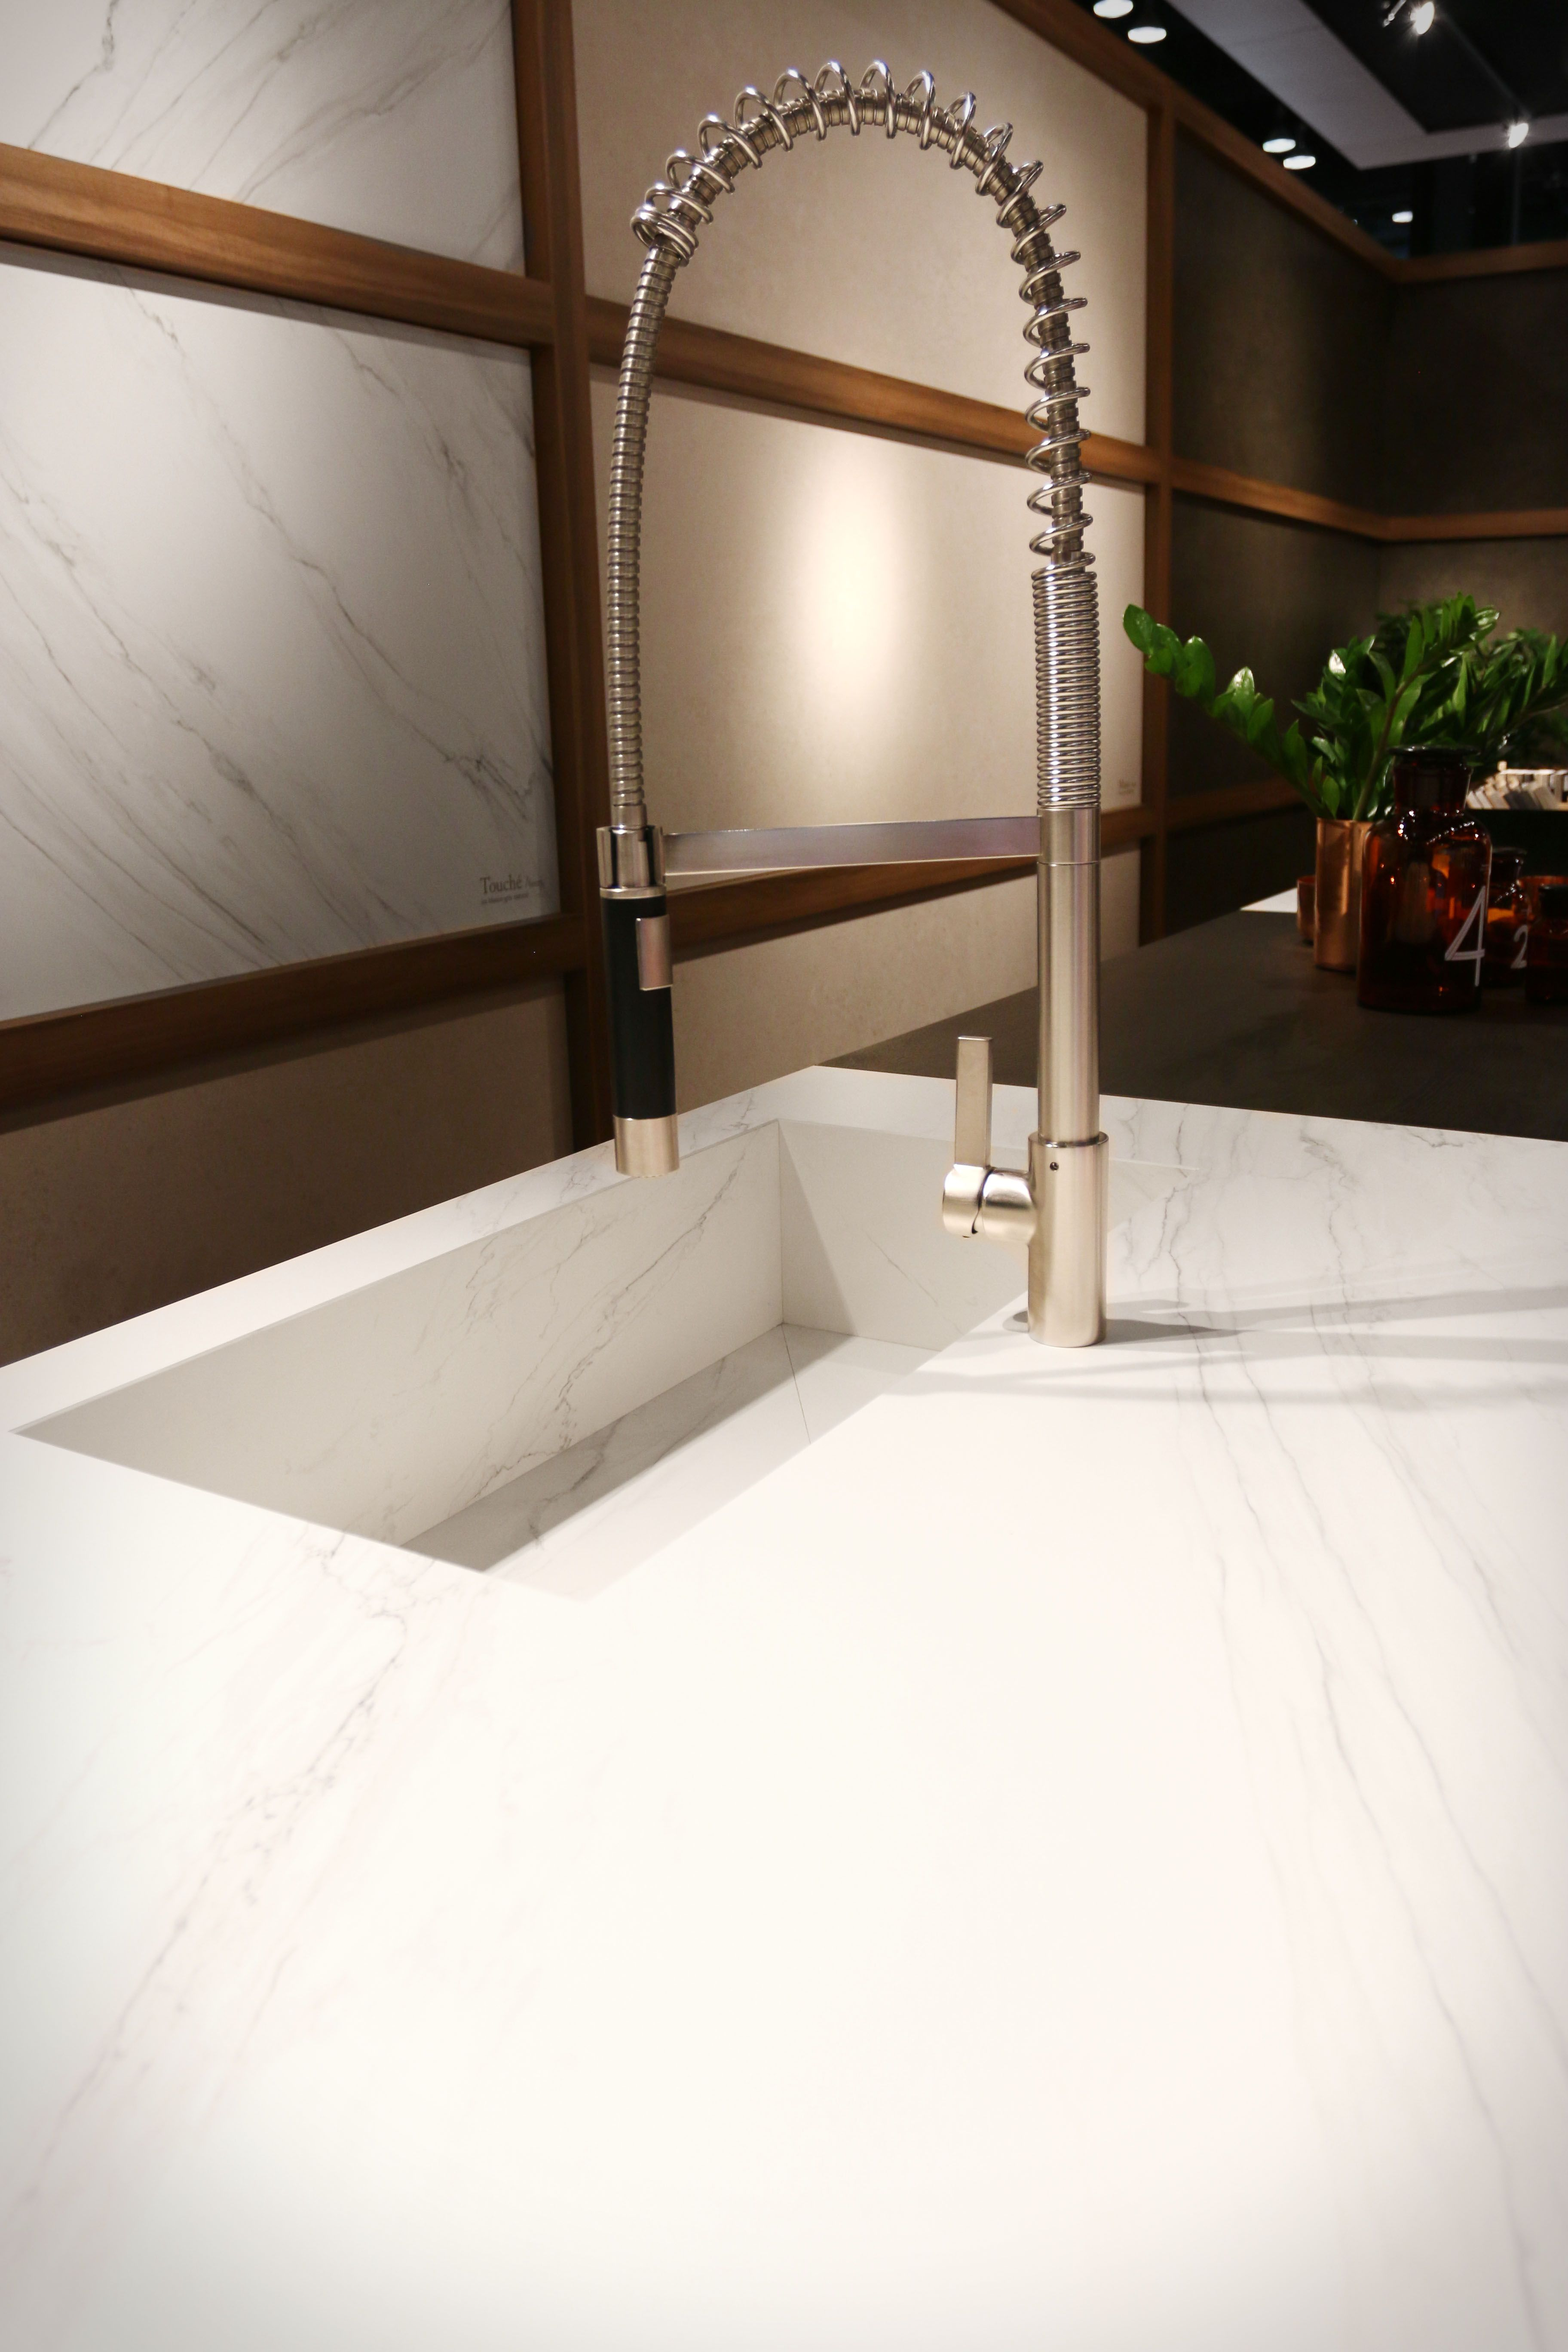 of charming a on new to best clean ideas kitchen images countertops how countertop luxury sink porcelain slab pinterest